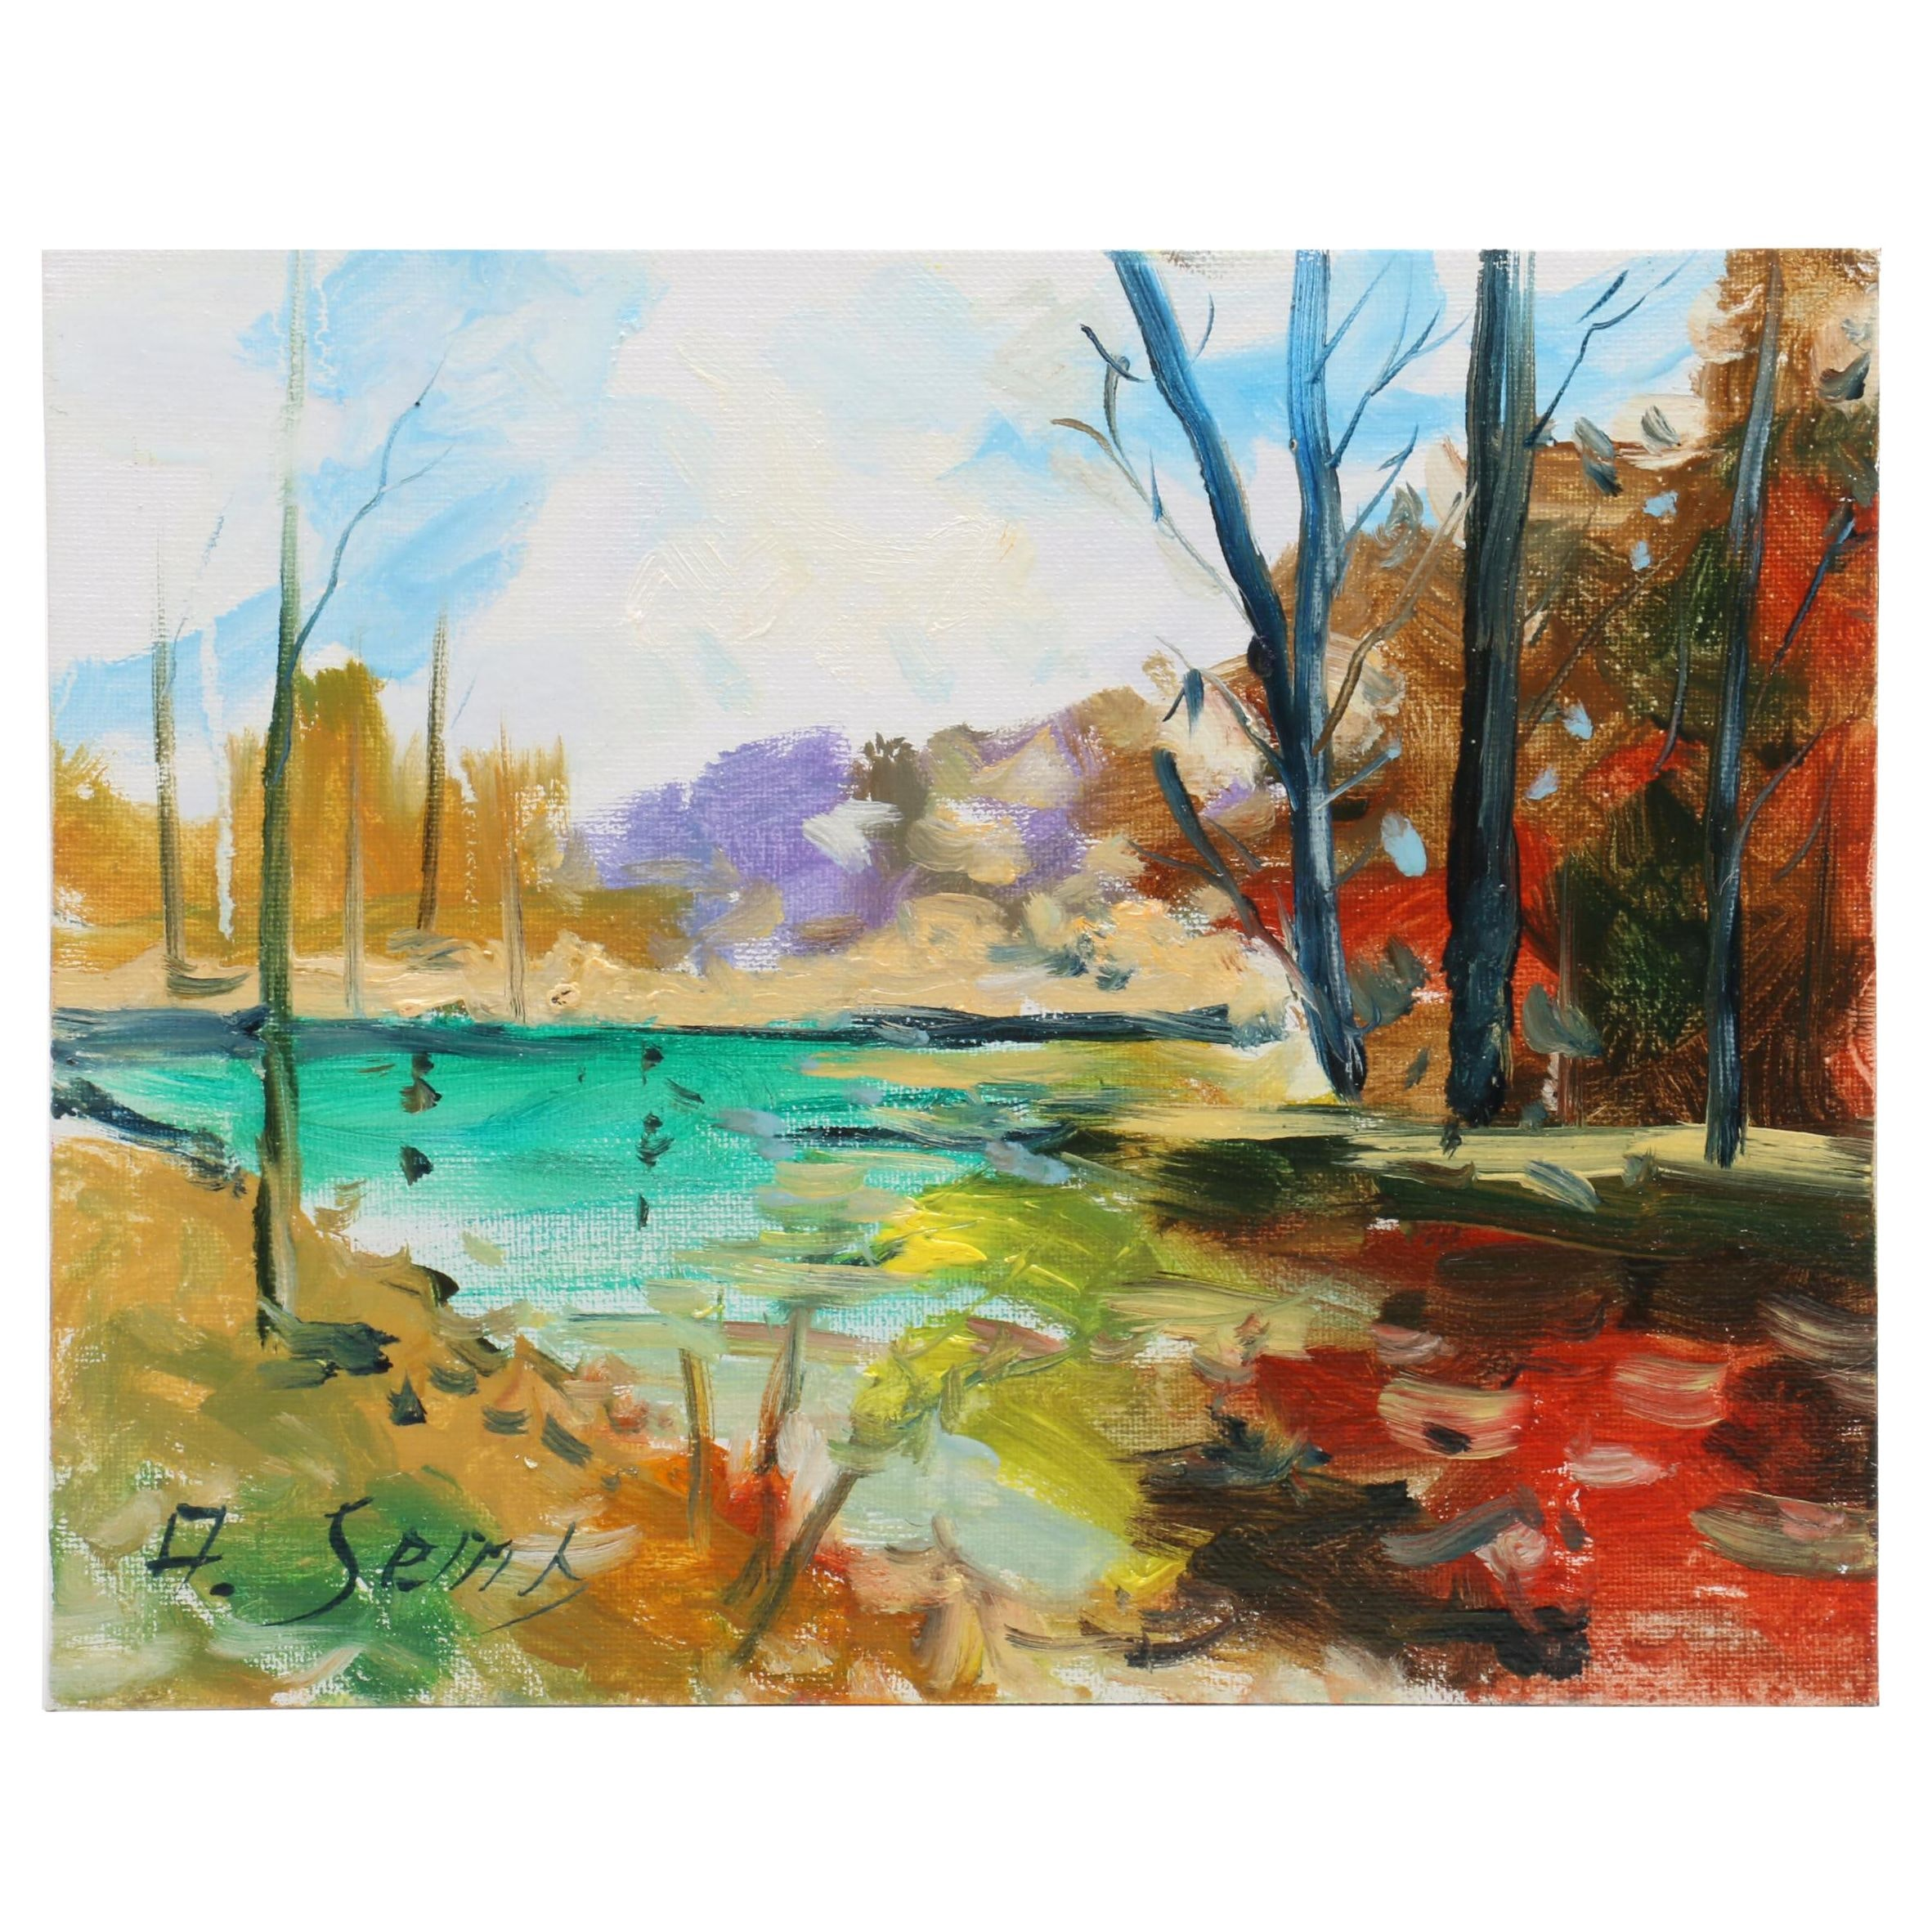 Andrew Semberecki  Impressionist Style Landscape Oil Painting